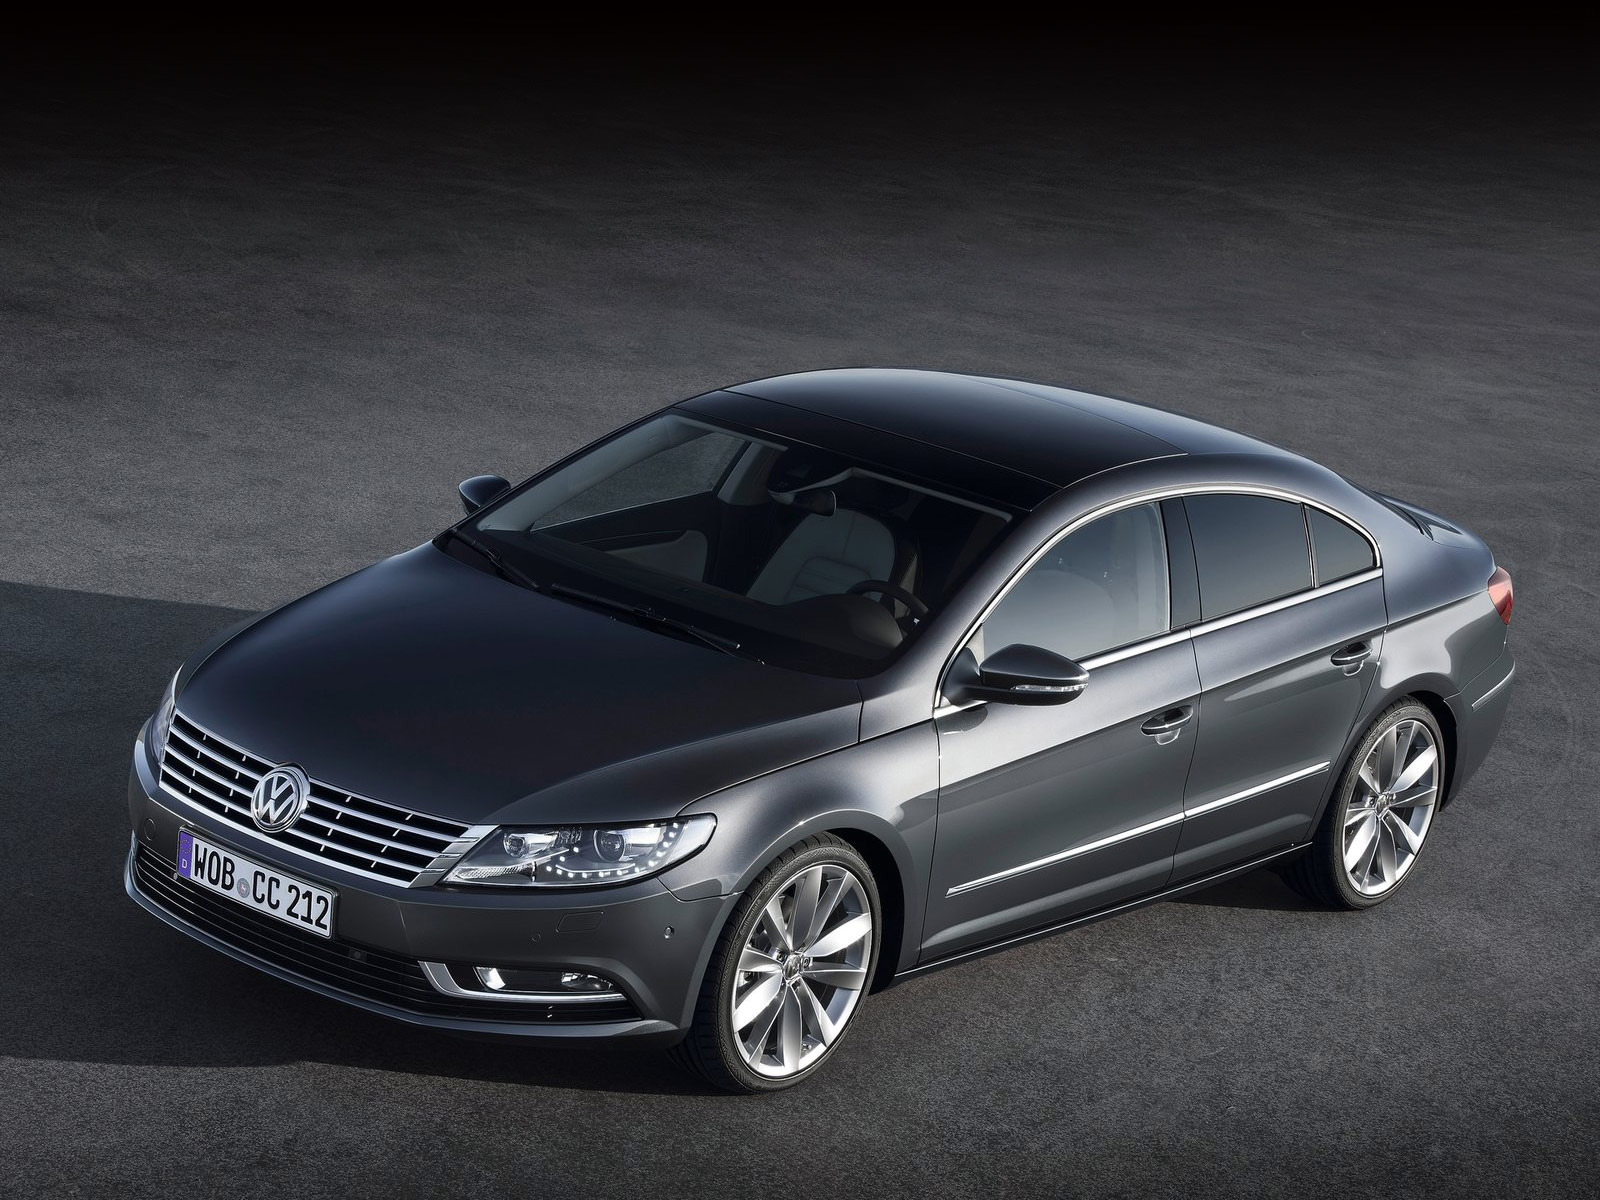 2013 volkswagen passat cc vw car desktop wallpaper. Black Bedroom Furniture Sets. Home Design Ideas